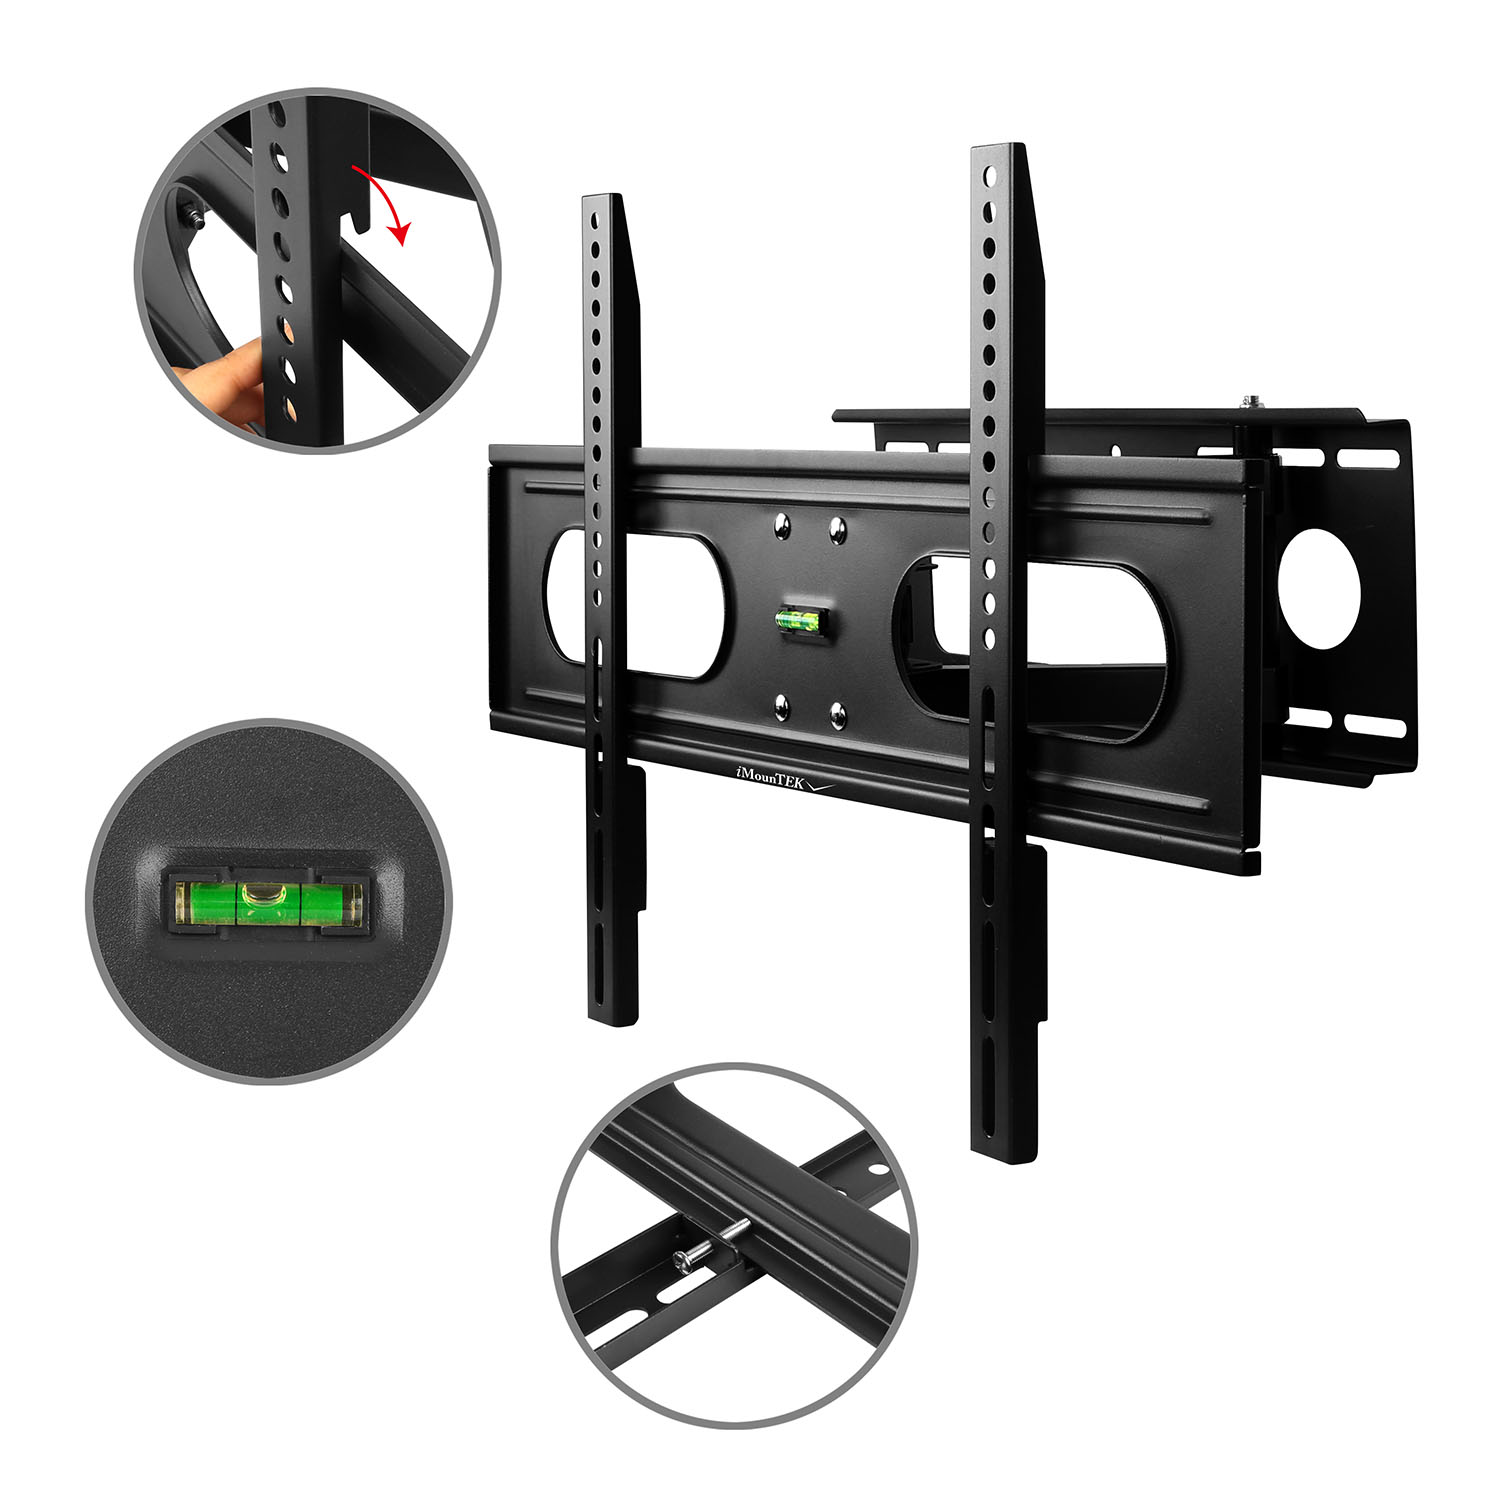 "iMounTEK Tilting TV Wall Mount Bracket For 37"" TO 70"" LED/LCD/OLED/Plasma Flat Screen TV. Full Motion Swivel Articulating Dual Arms, 99 LBS Hold- Sony/LG/Samsung/Panasonic/Vizio/Toshiba"